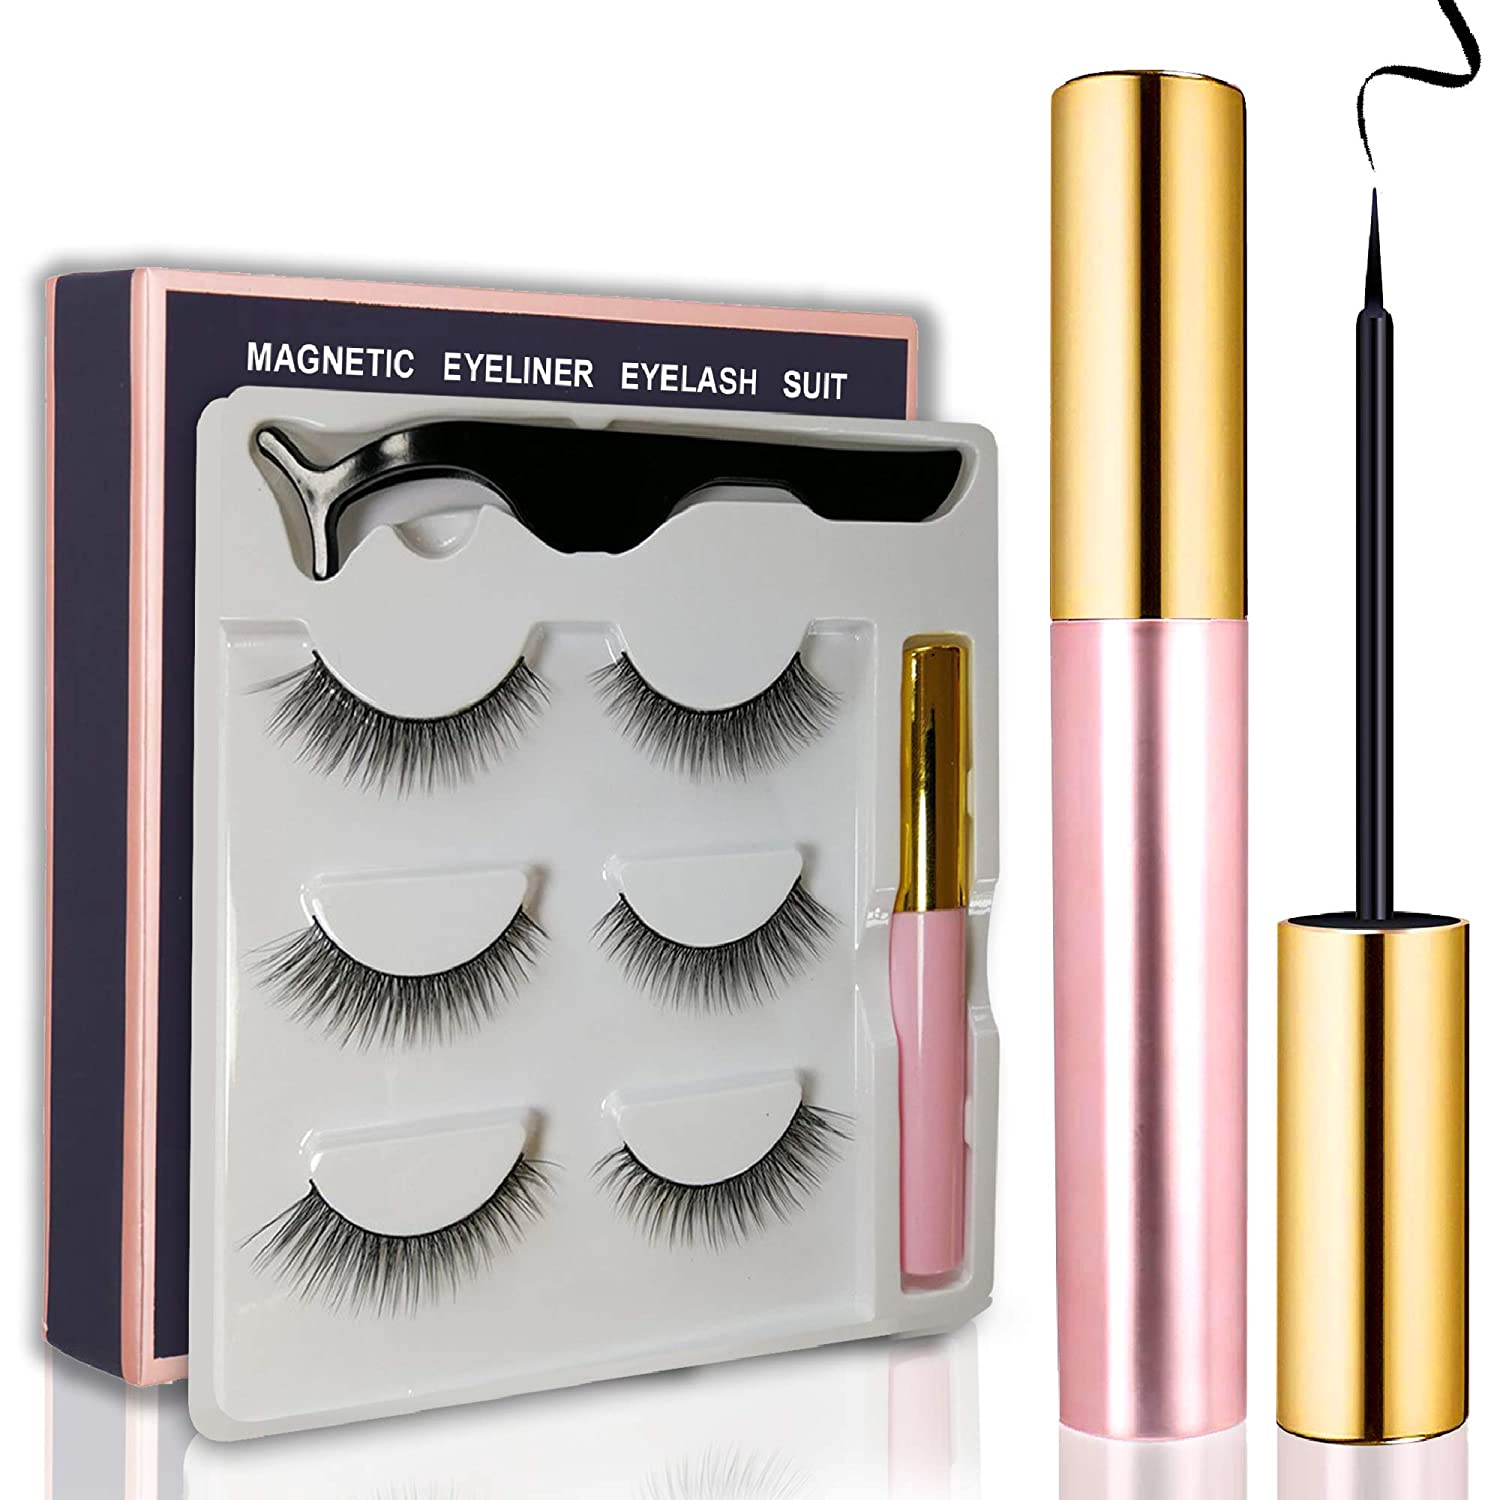 Magnetic Eyeliner with Magnetic Eyelashes Kit, Waterproof Smooth Liquid Eyeliner and Multi Styles Ultra-thin 3D Reusable Magnets False Lashes with Applicator for Party Dating Wedding (S9)